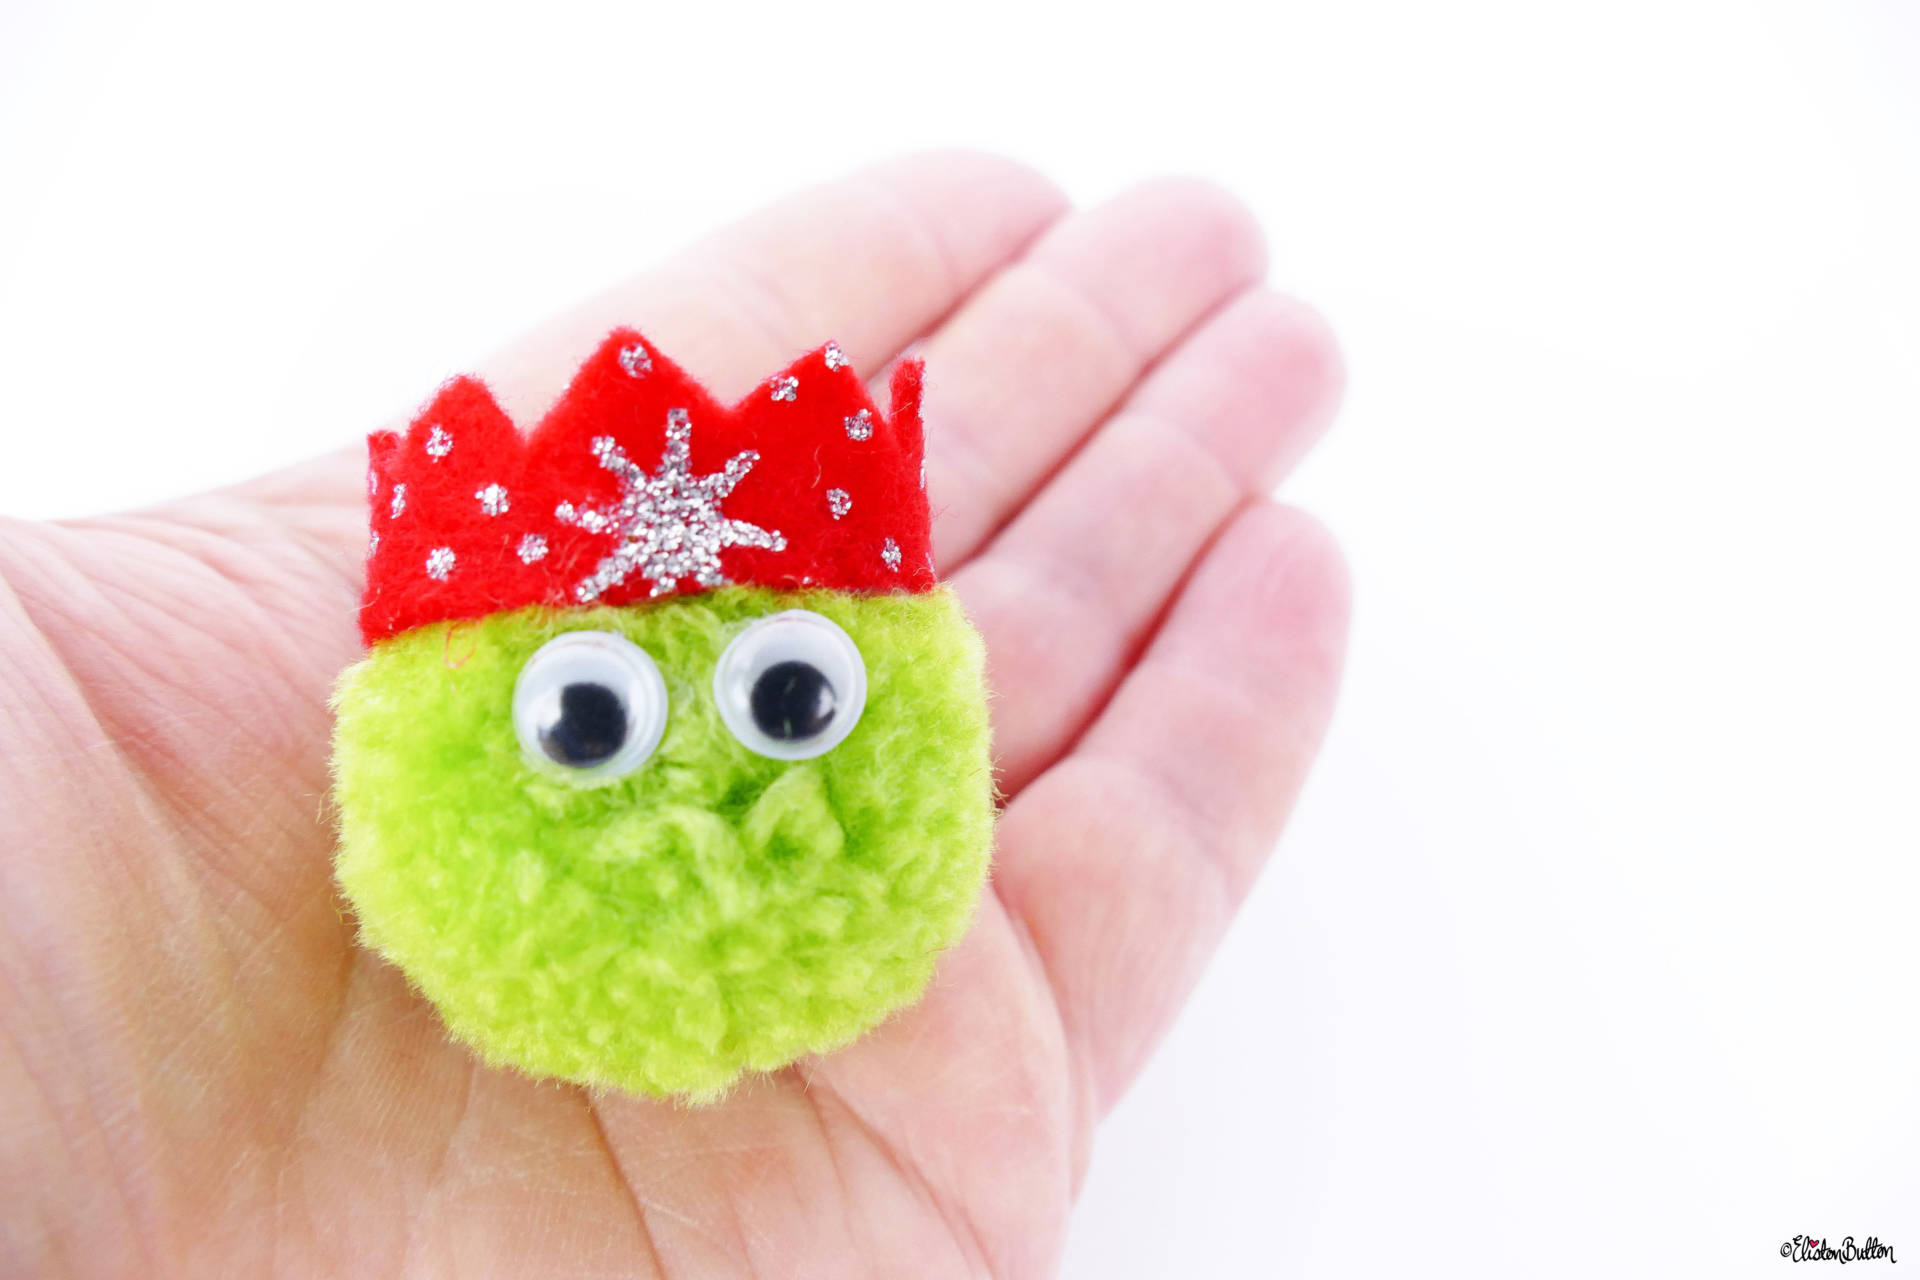 Light Green Christmas Sprout Pom Pom Brooch by Eliston Button in Hand for Size - Christmas Sprout Pom Pom Brooches! at www.elistonbutton.com - Eliston Button - That Crafty Kid – Art, Design, Craft & Adventure.